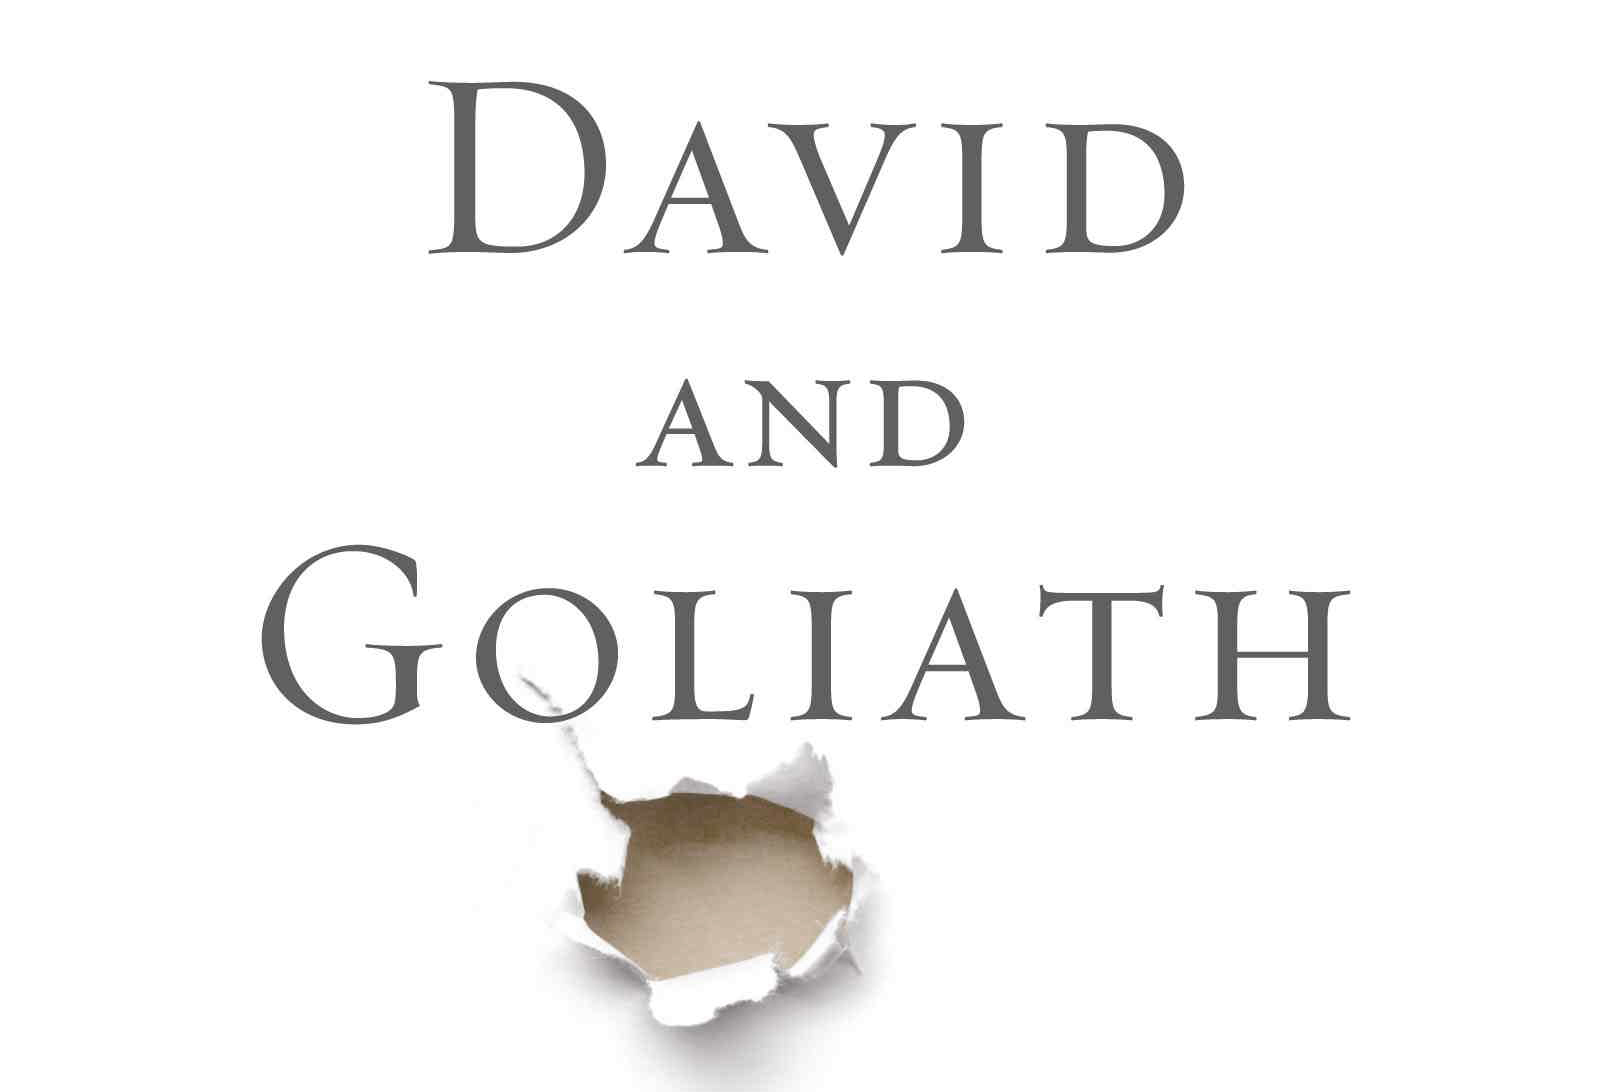 David-and-Goliath-Gladwell-FI.jpg